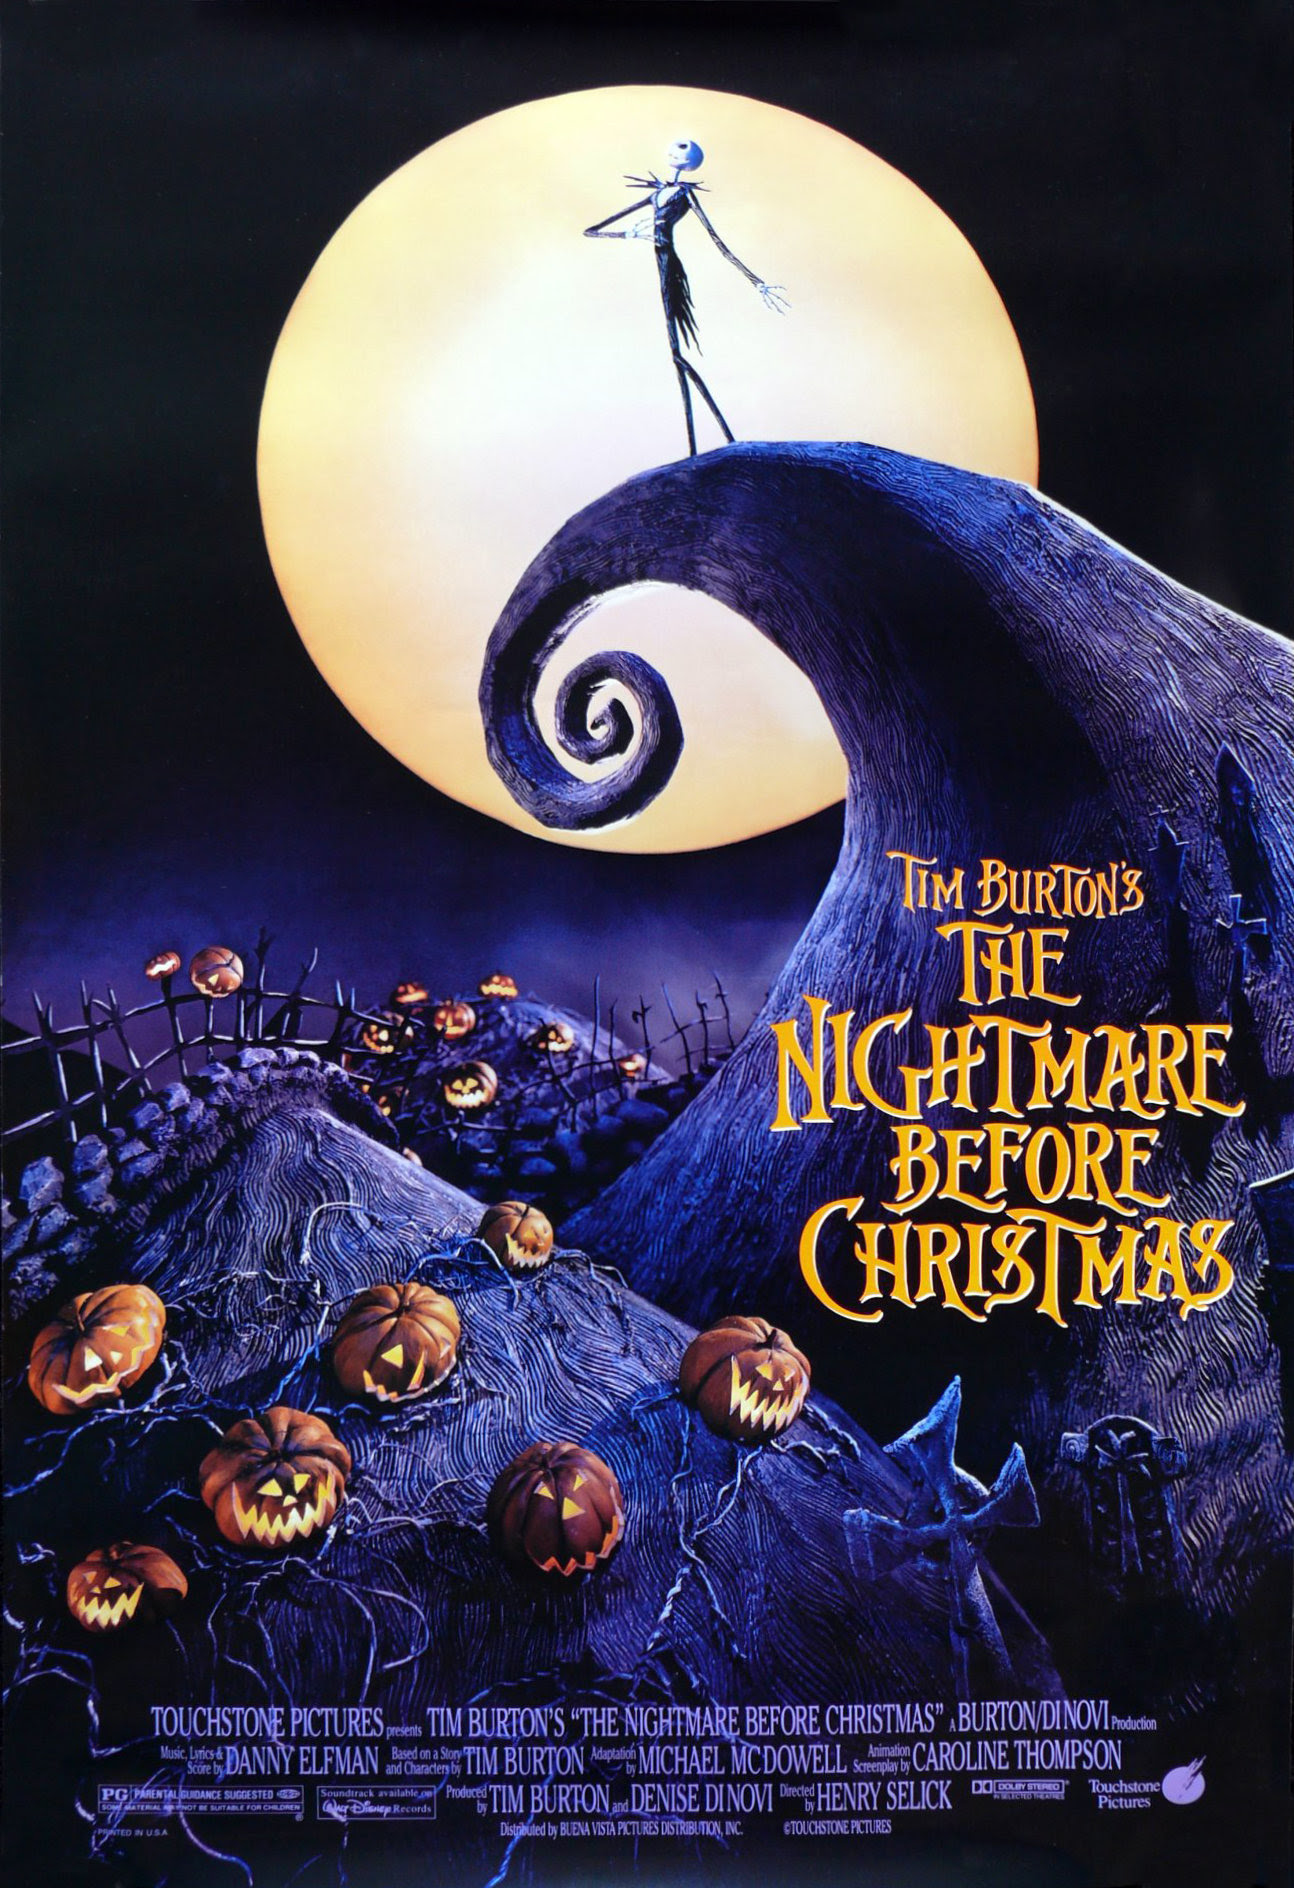 Before Christmas Nightmare Decorating Ideas